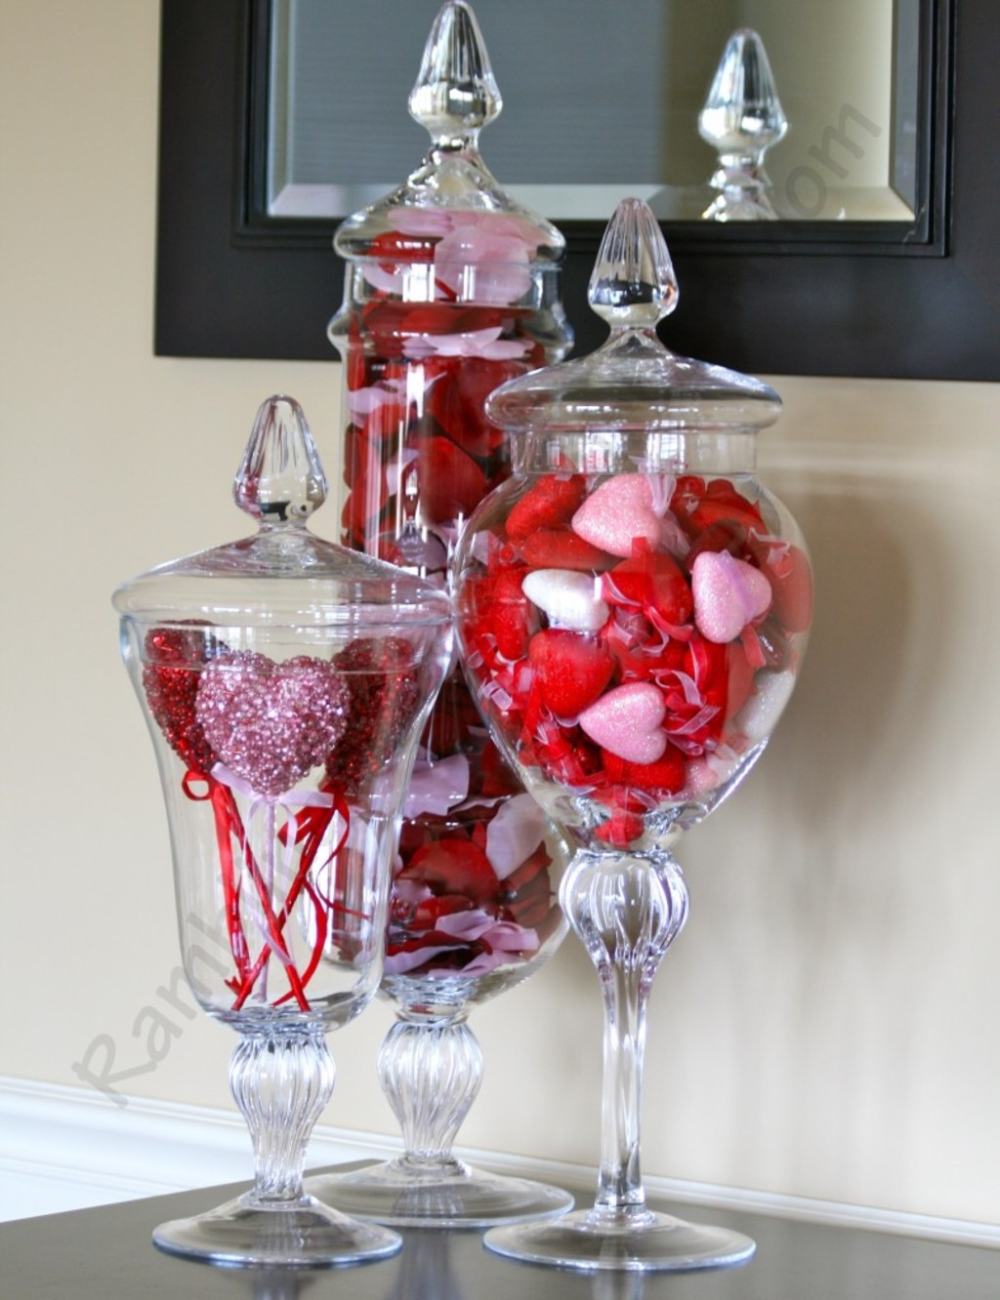 150 Sweet & Romantic Valentine's Home Decorations That Are Really Easy To Do - Hike n Dip